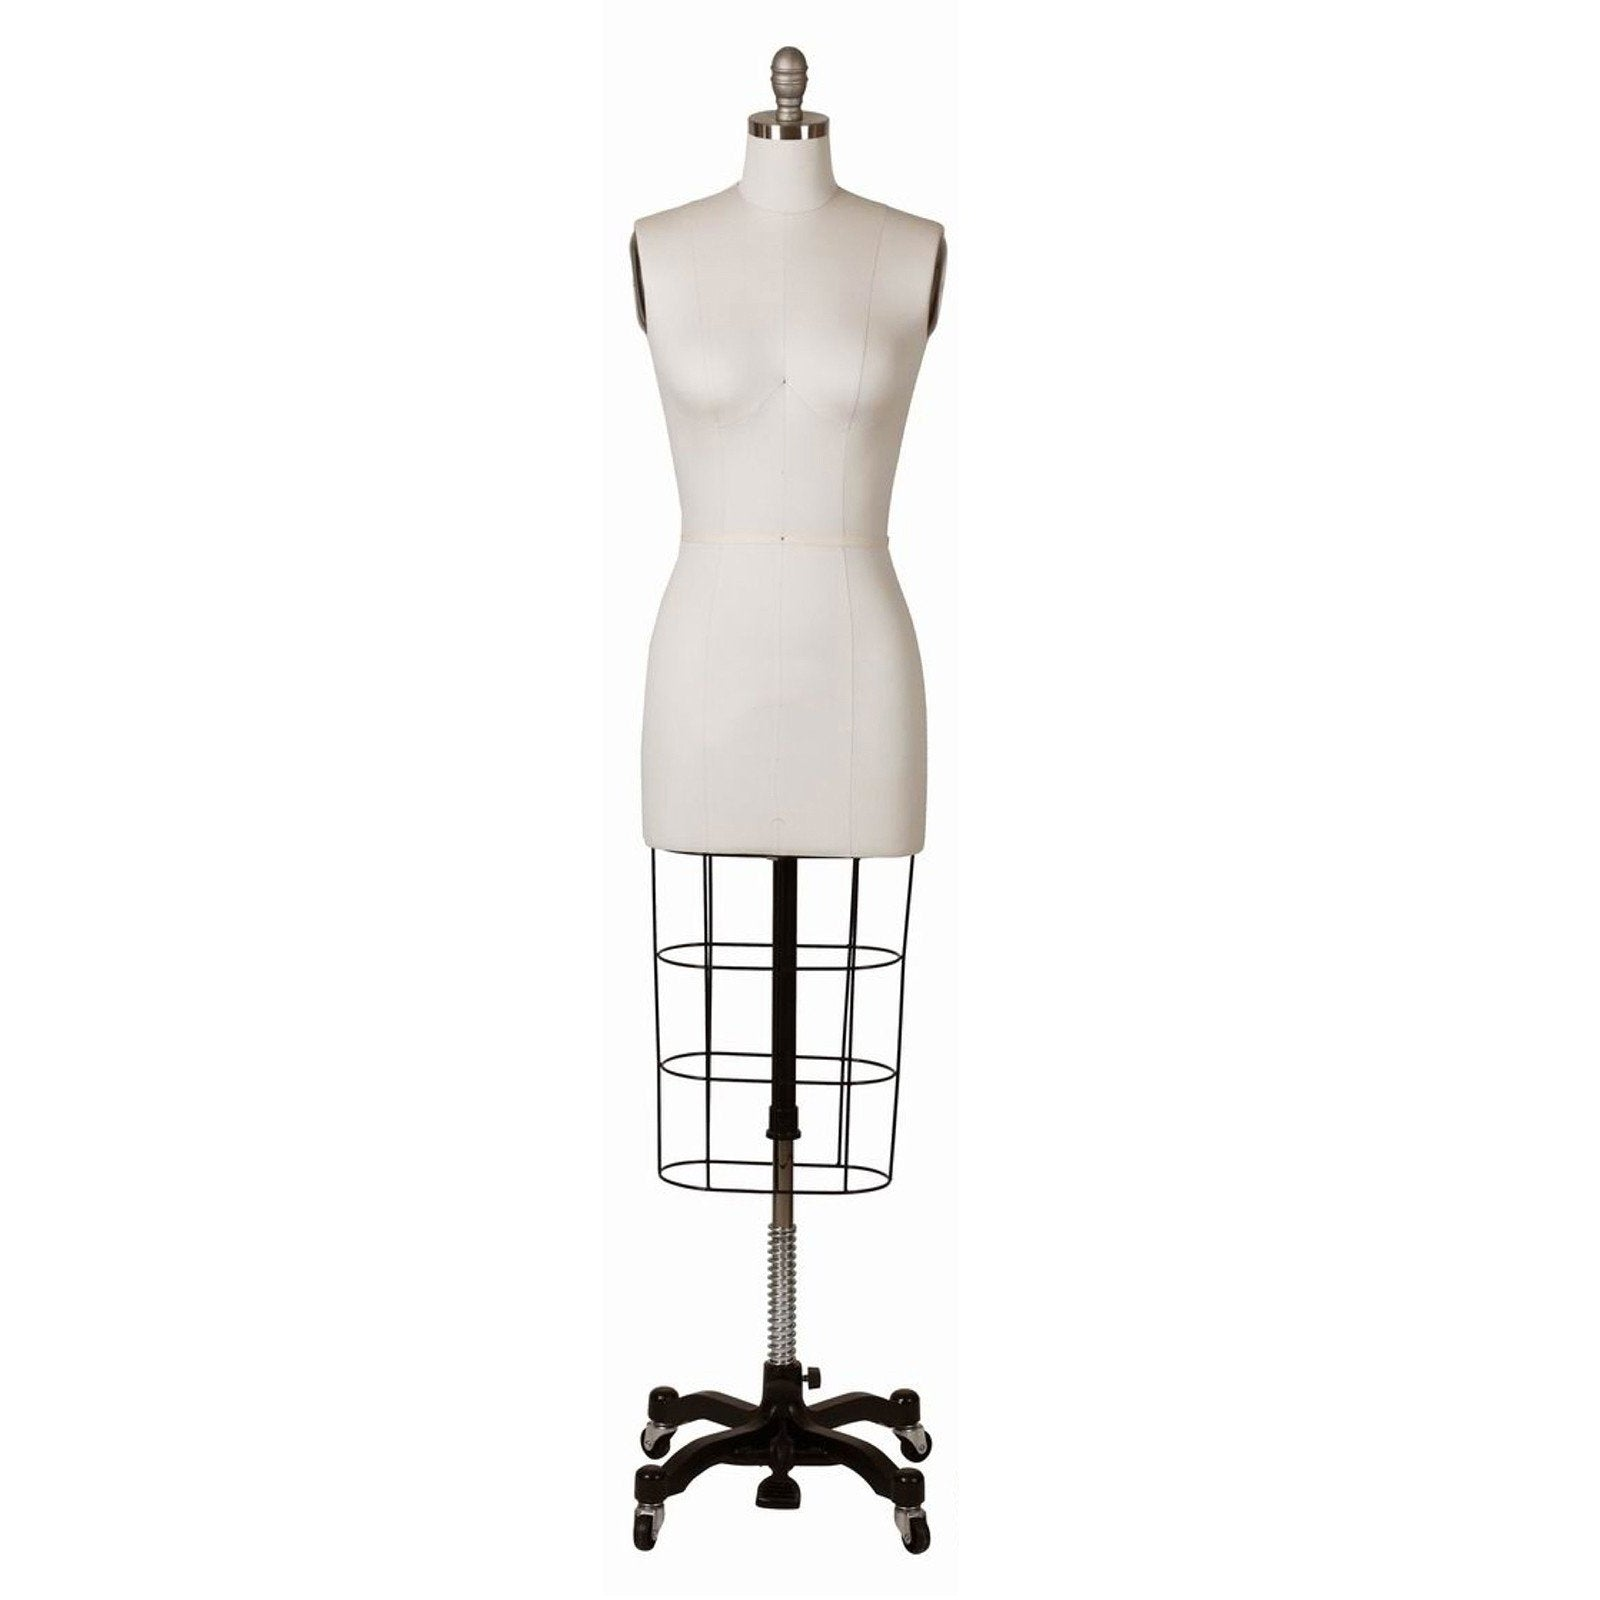 Female Professional Dress Form with Non-Collapsible Shoulders